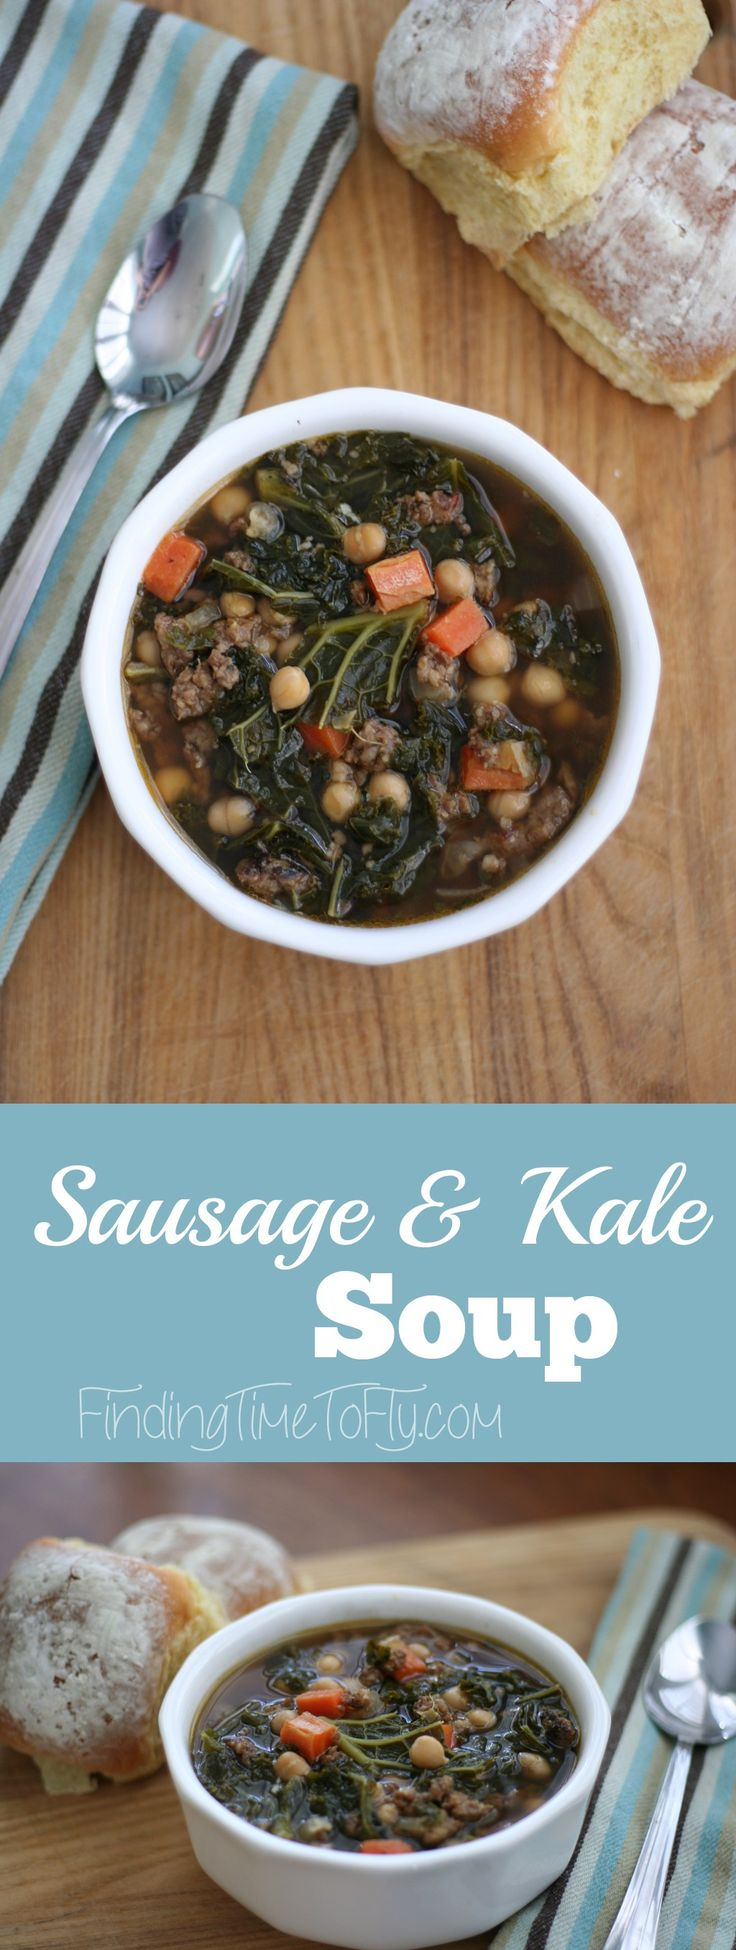 Here's a great way to introduce kale to your family. Even our pickiest son loves this Sausage and Kale Soup!